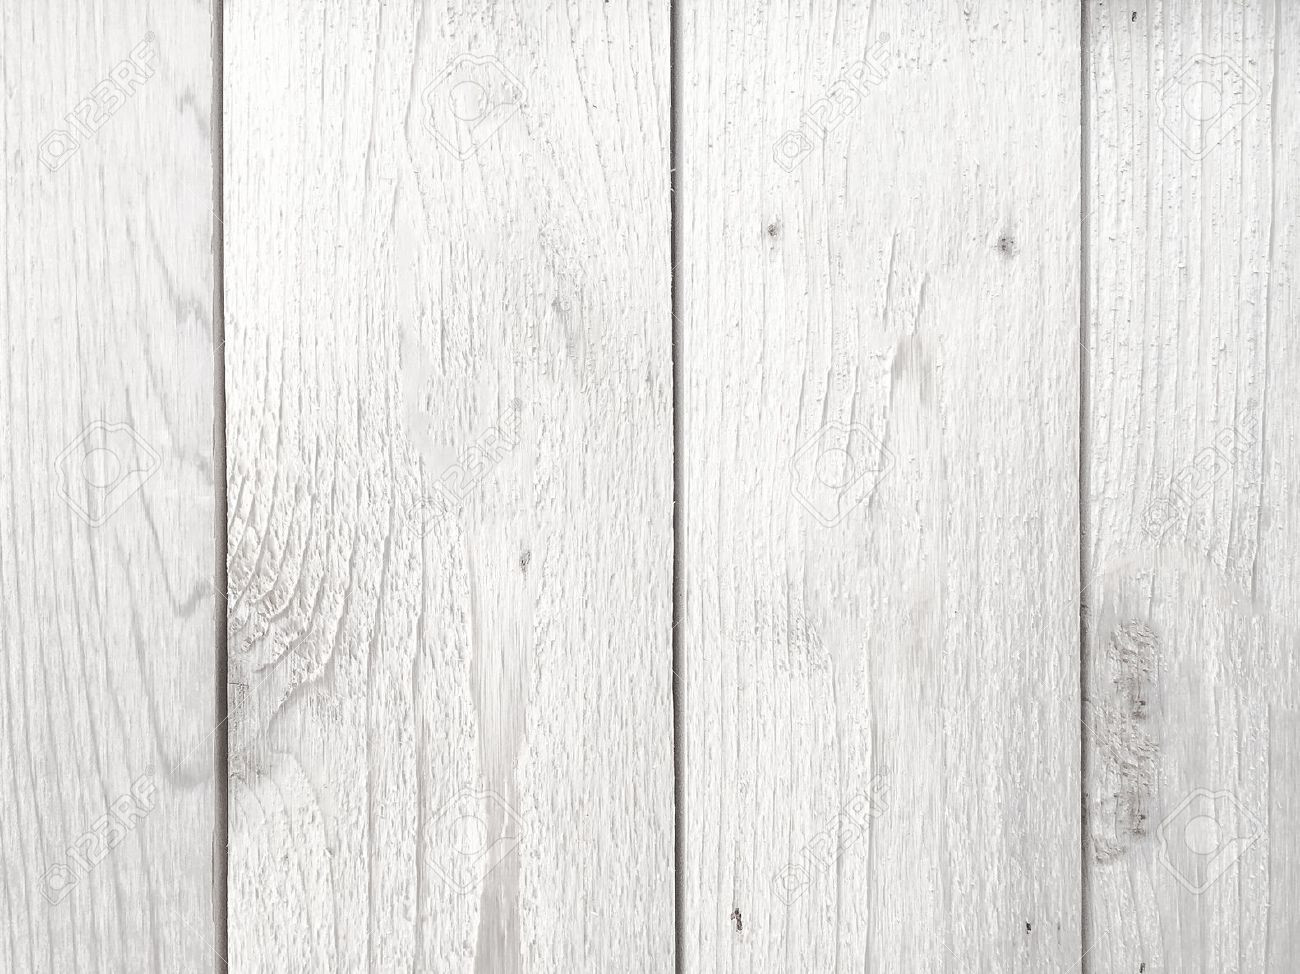 Whitewashed Wood Background Stock Photo Picture And Royalty Free